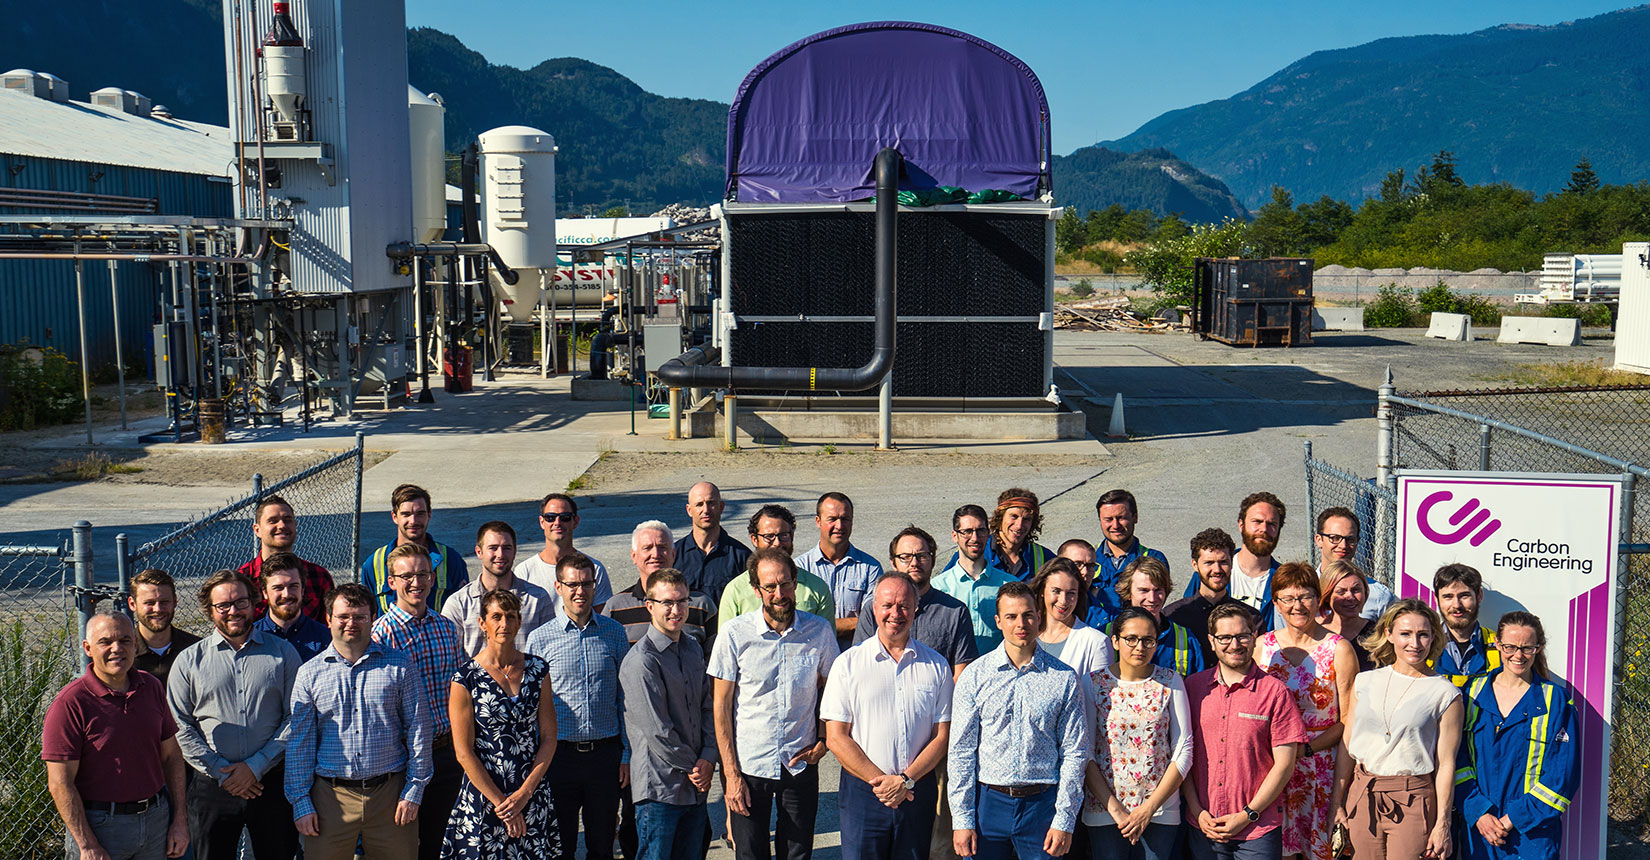 Carbon Engineering team members standing in front of direct air capture technology outside with Squamish's Howe Sound behind them.